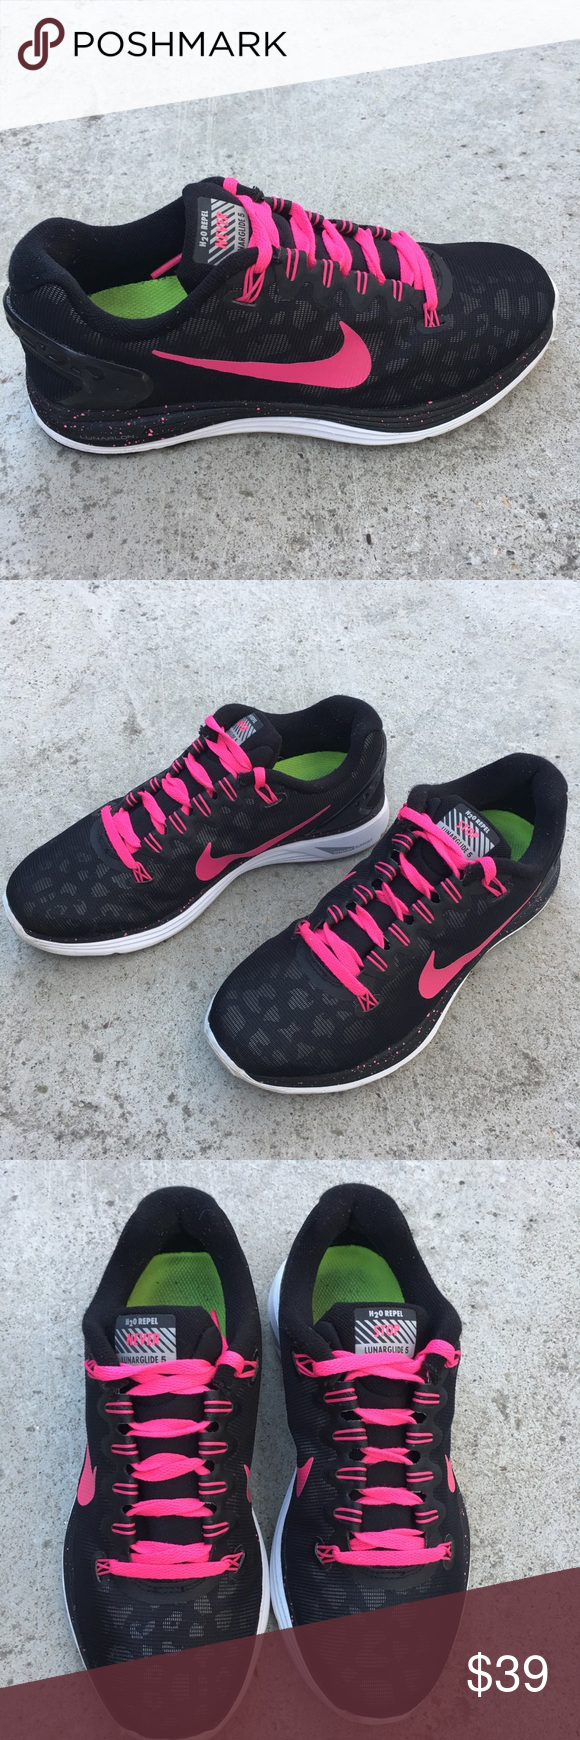 100% authentic a6348 0d988 Nike lunarglide 5 H2O repel leopard pink blck shoe Very good condition Nike  Shoes Sneakers